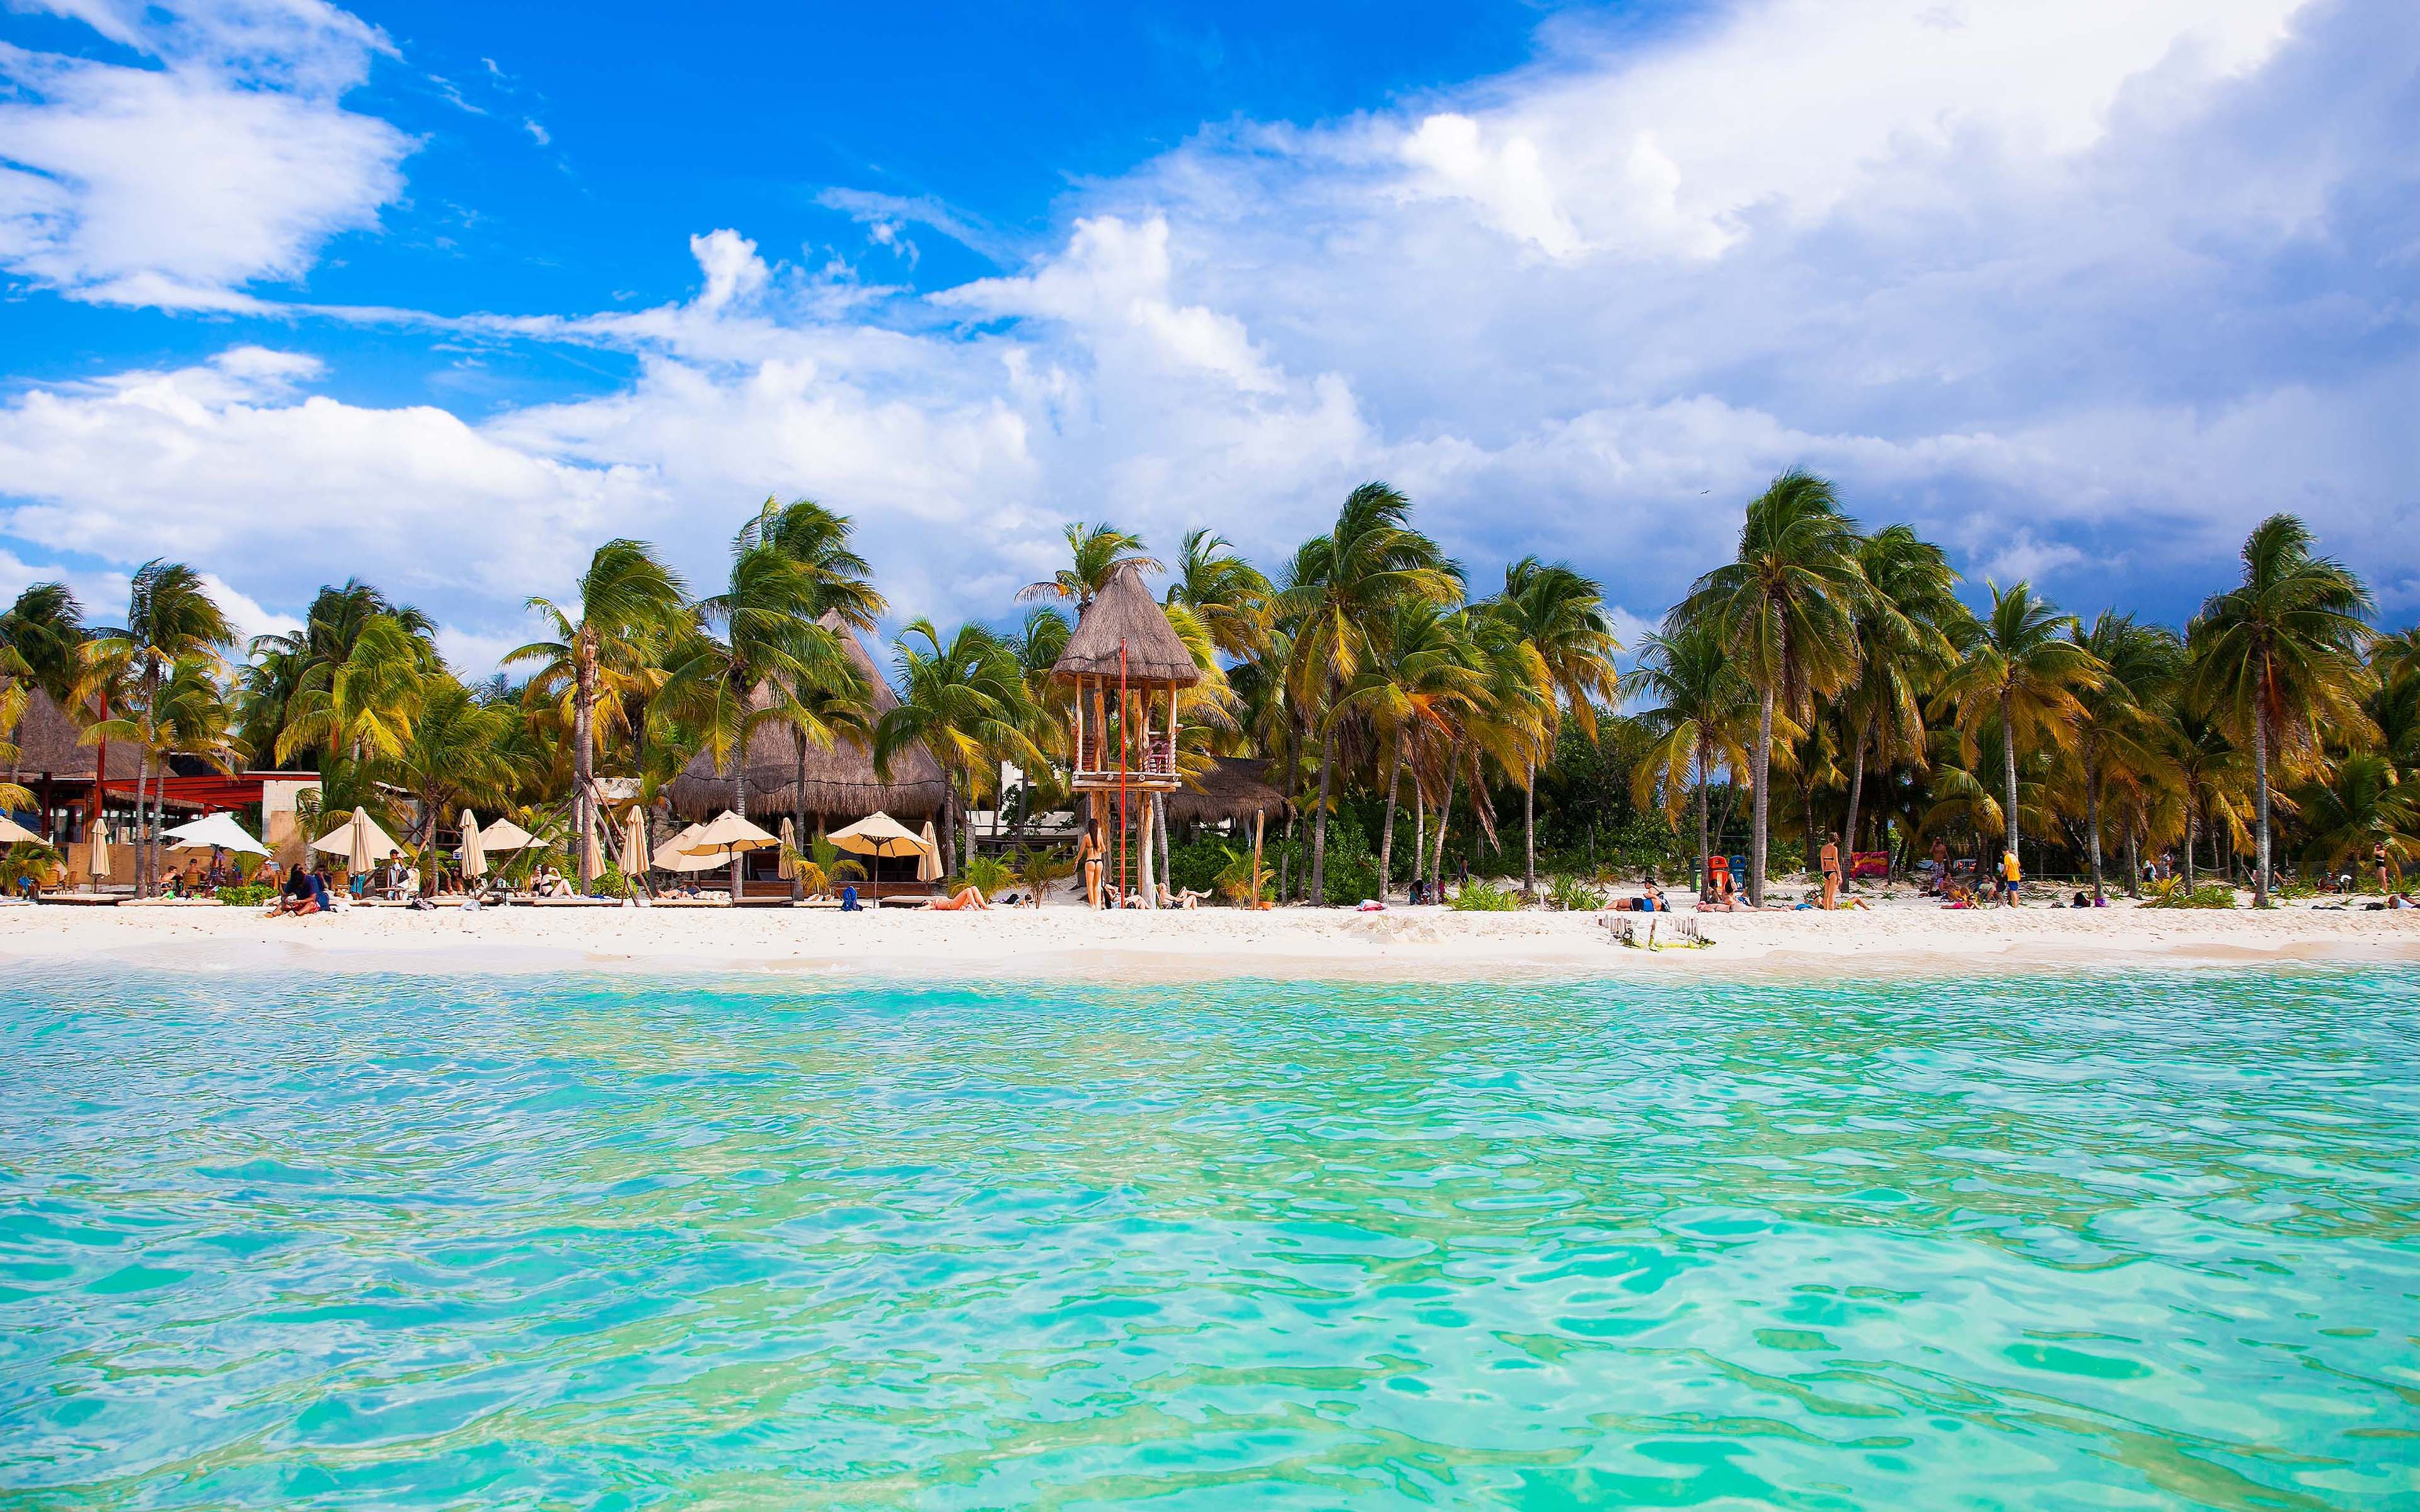 Cancun Beach Mexico A City On The Yucatan Peninsula That Borders The ...